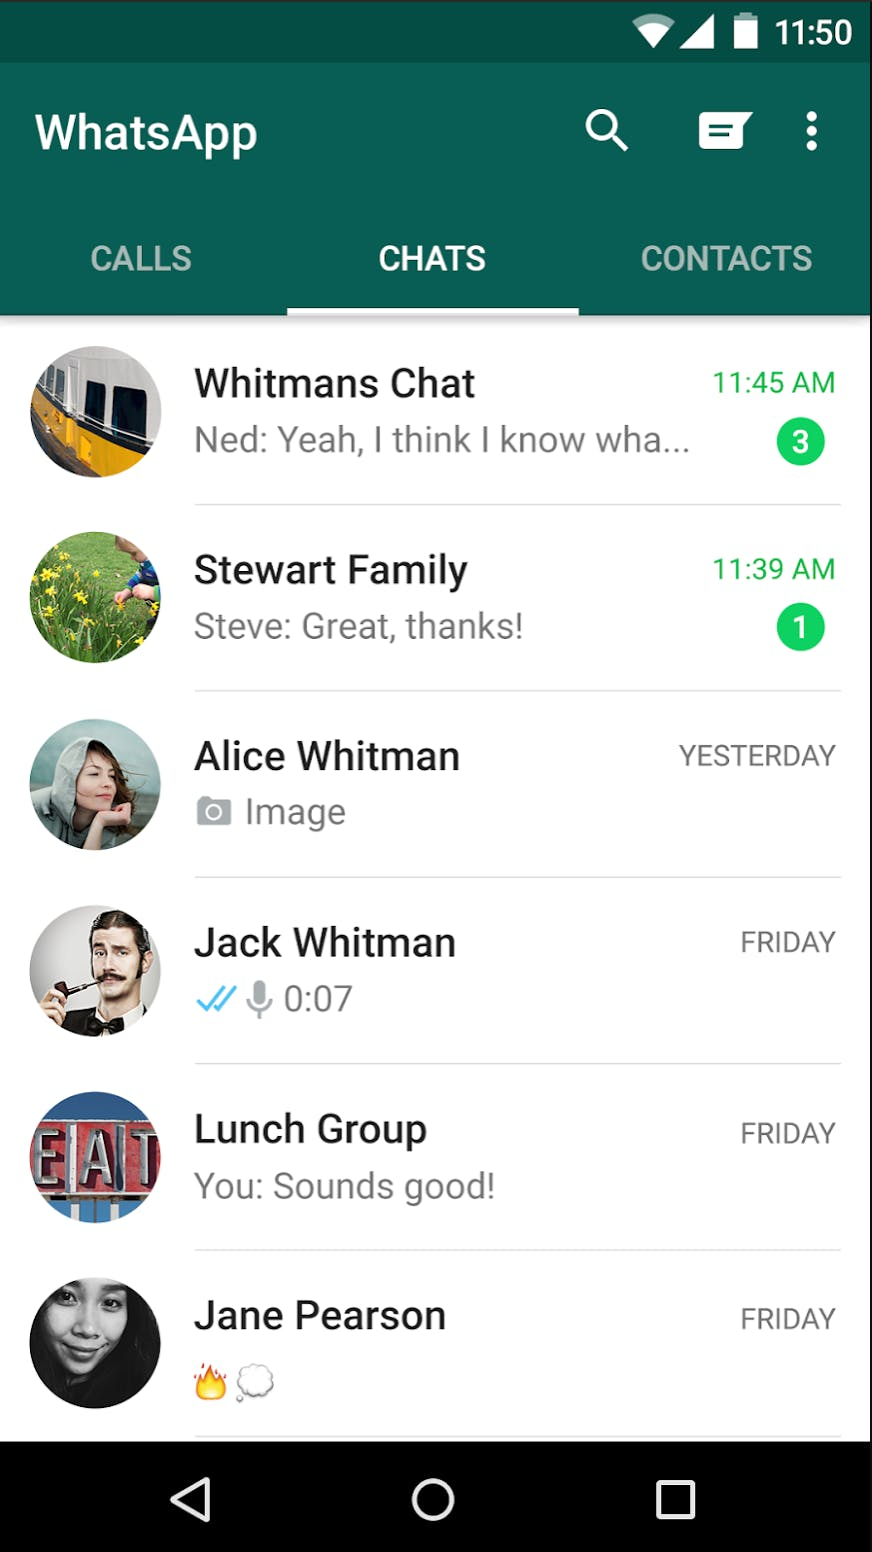 A screenshot of the home screen within WhatsApp that displays all of your active conversations.